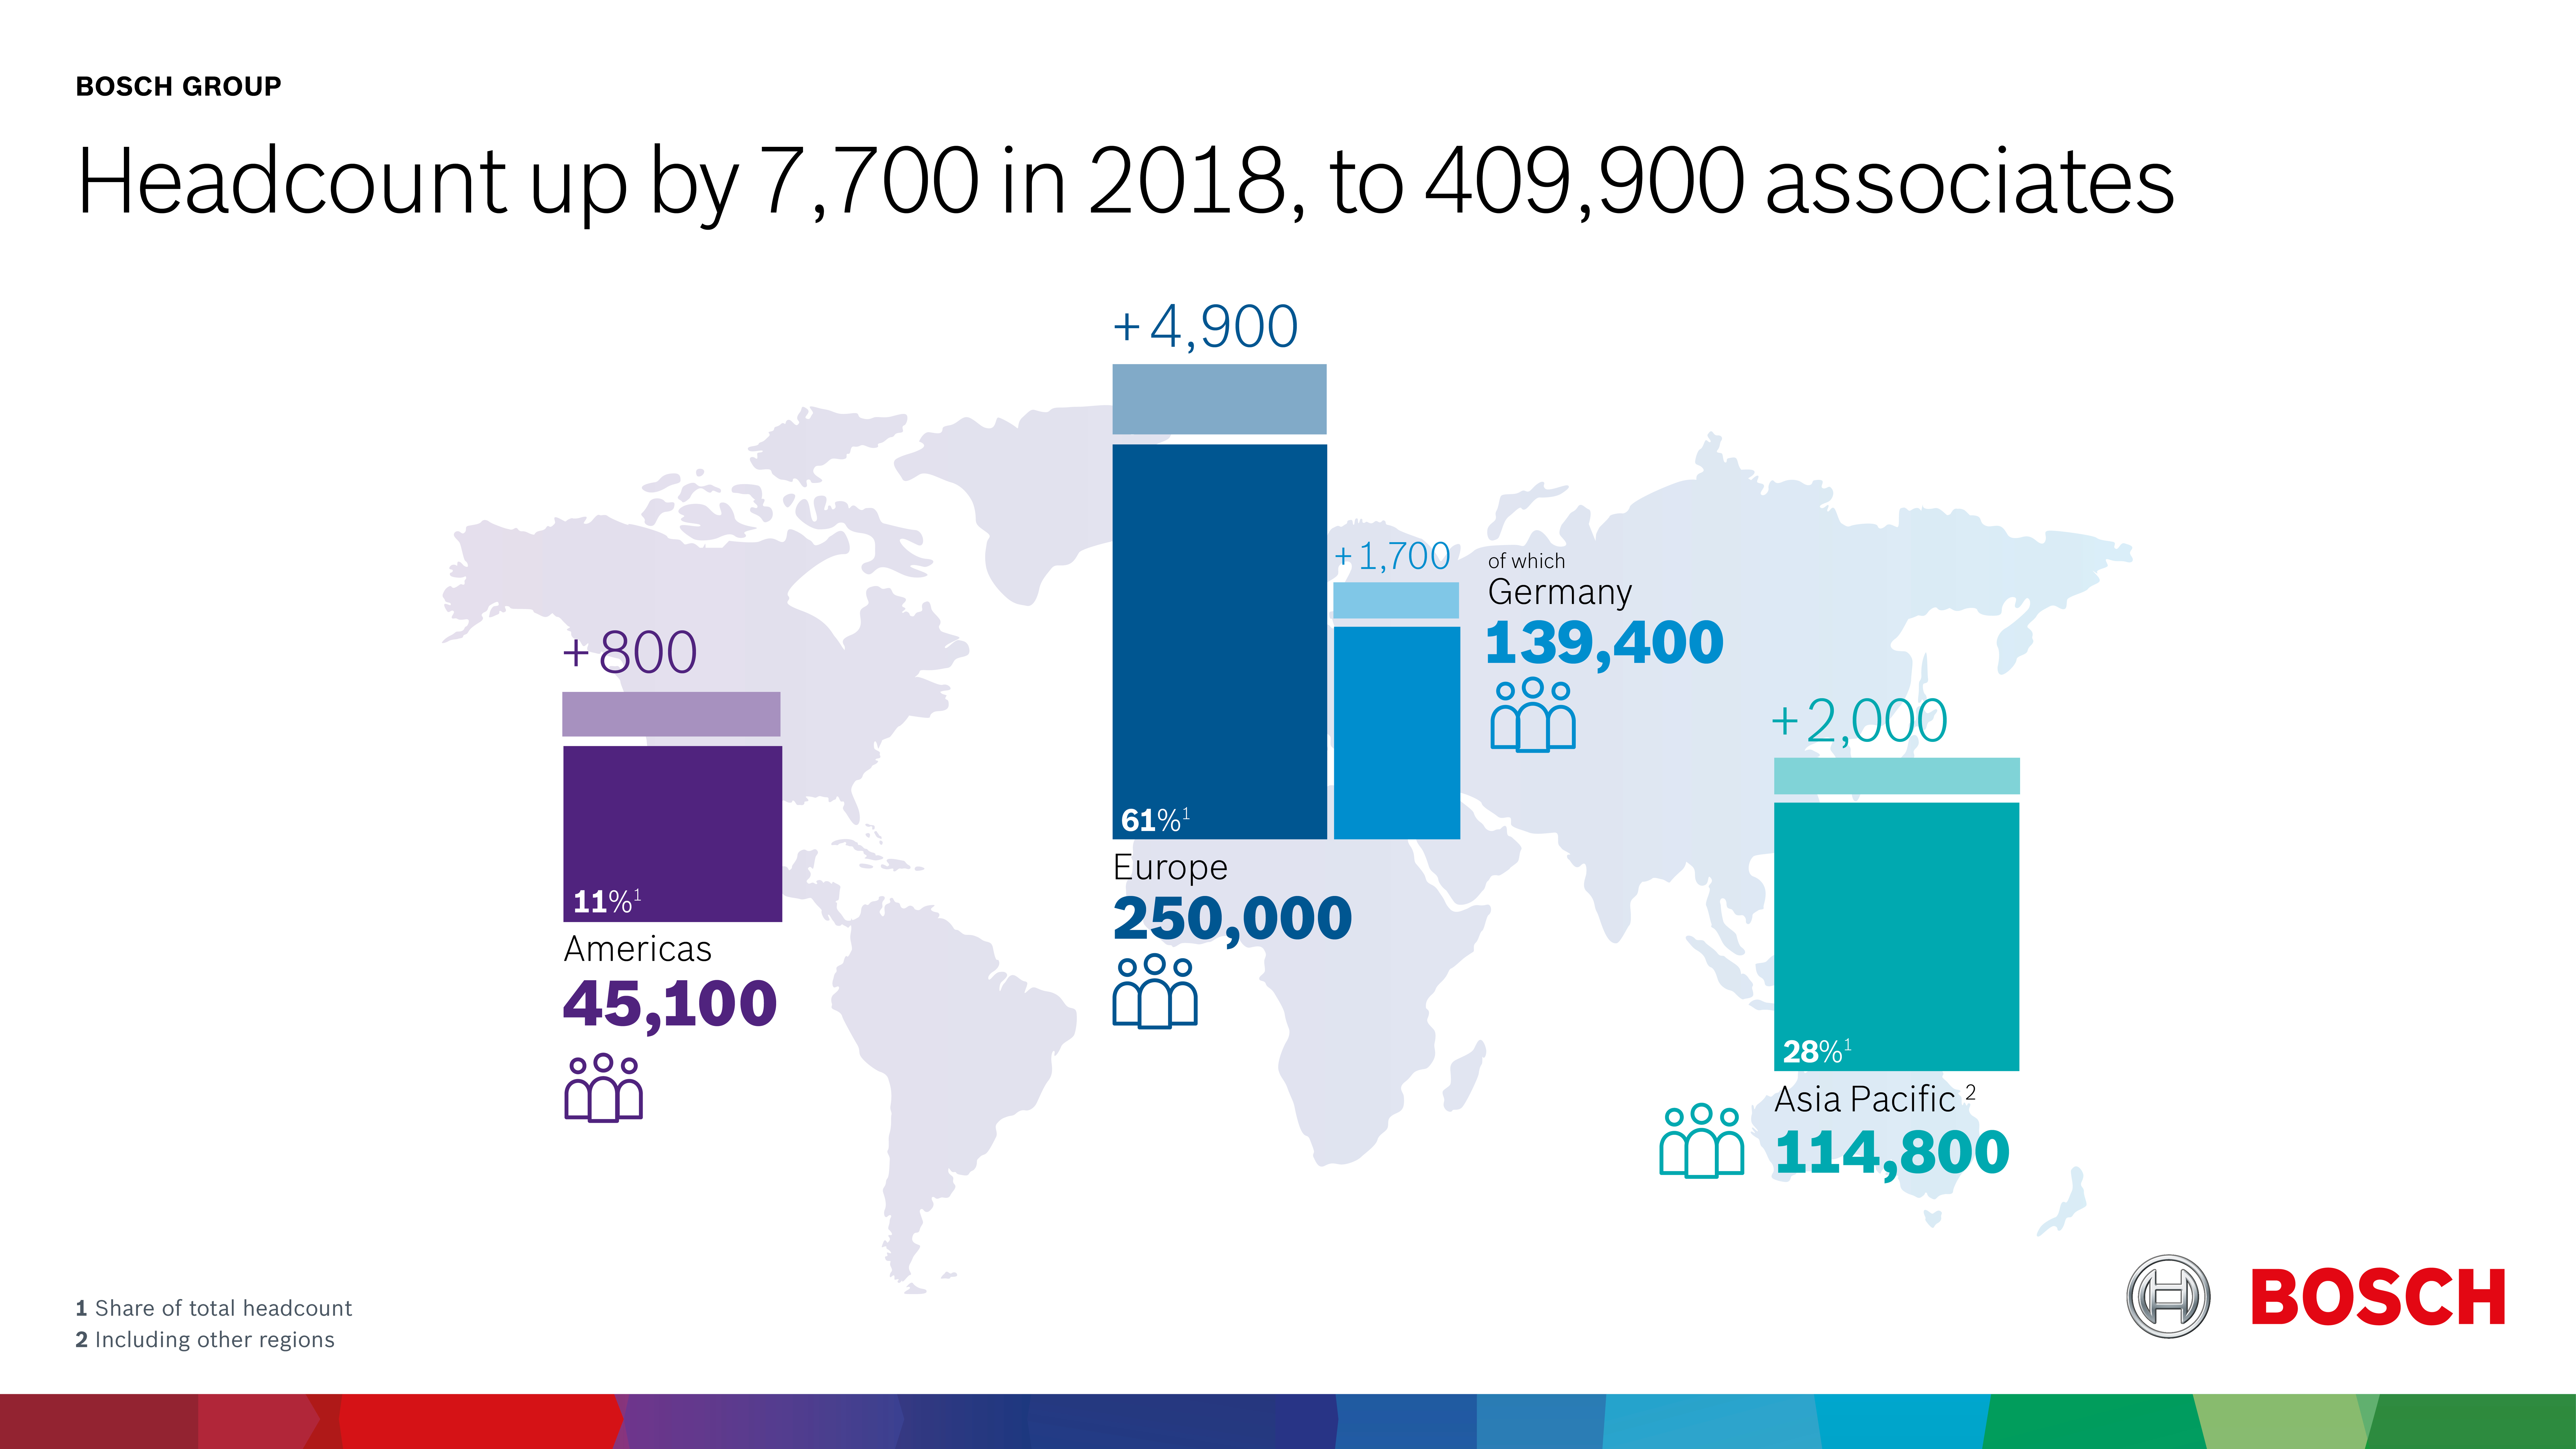 Global headcount up by 7,700 in 2018, to 410,000 associates